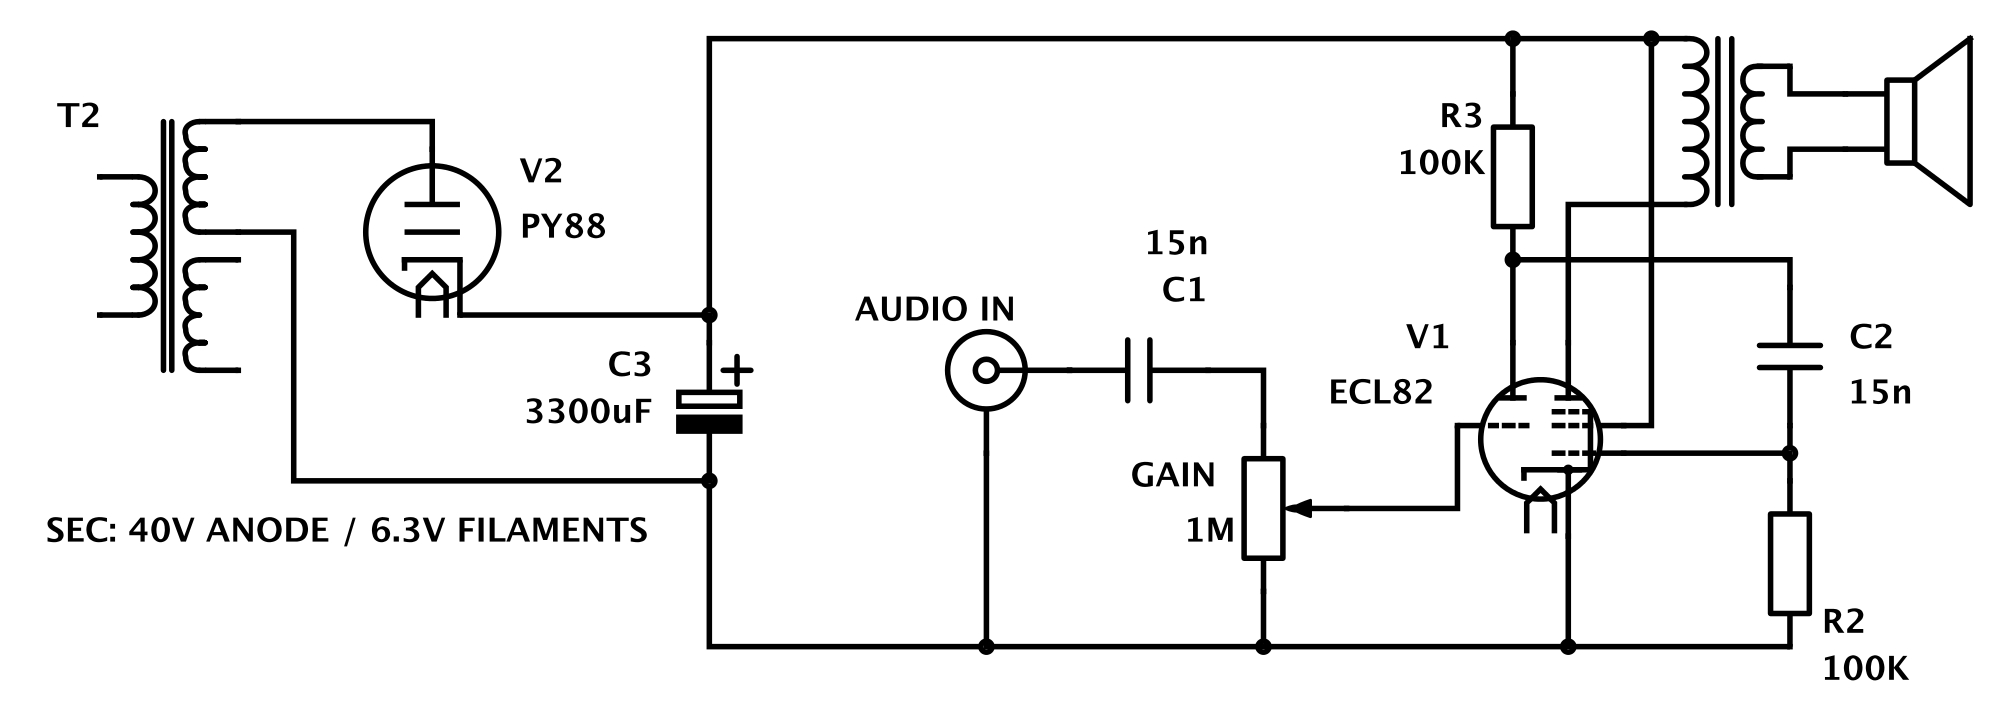 4949751414932586198 low voltage tube amp is great for beginners hackaday High-End Tube Amp Schematics at panicattacktreatment.co